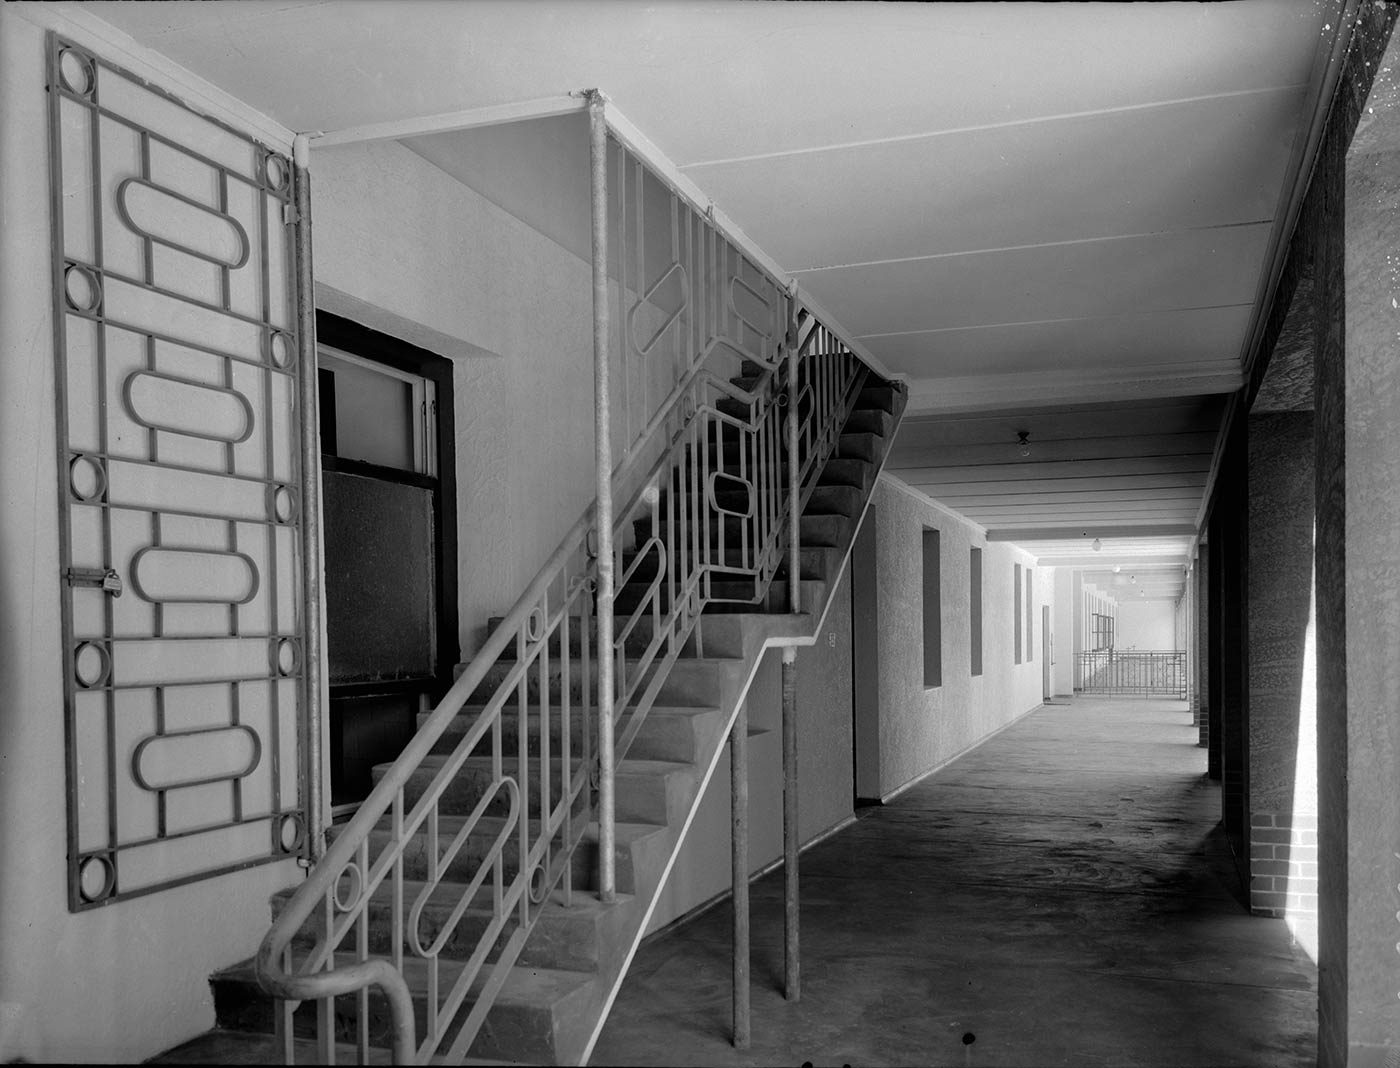 Black and white photo showing concrete stairs on an external verandah. The stairs have an ironwork rail, and a panel of ironwork is also mounted on the wall of the building. - click to view larger image